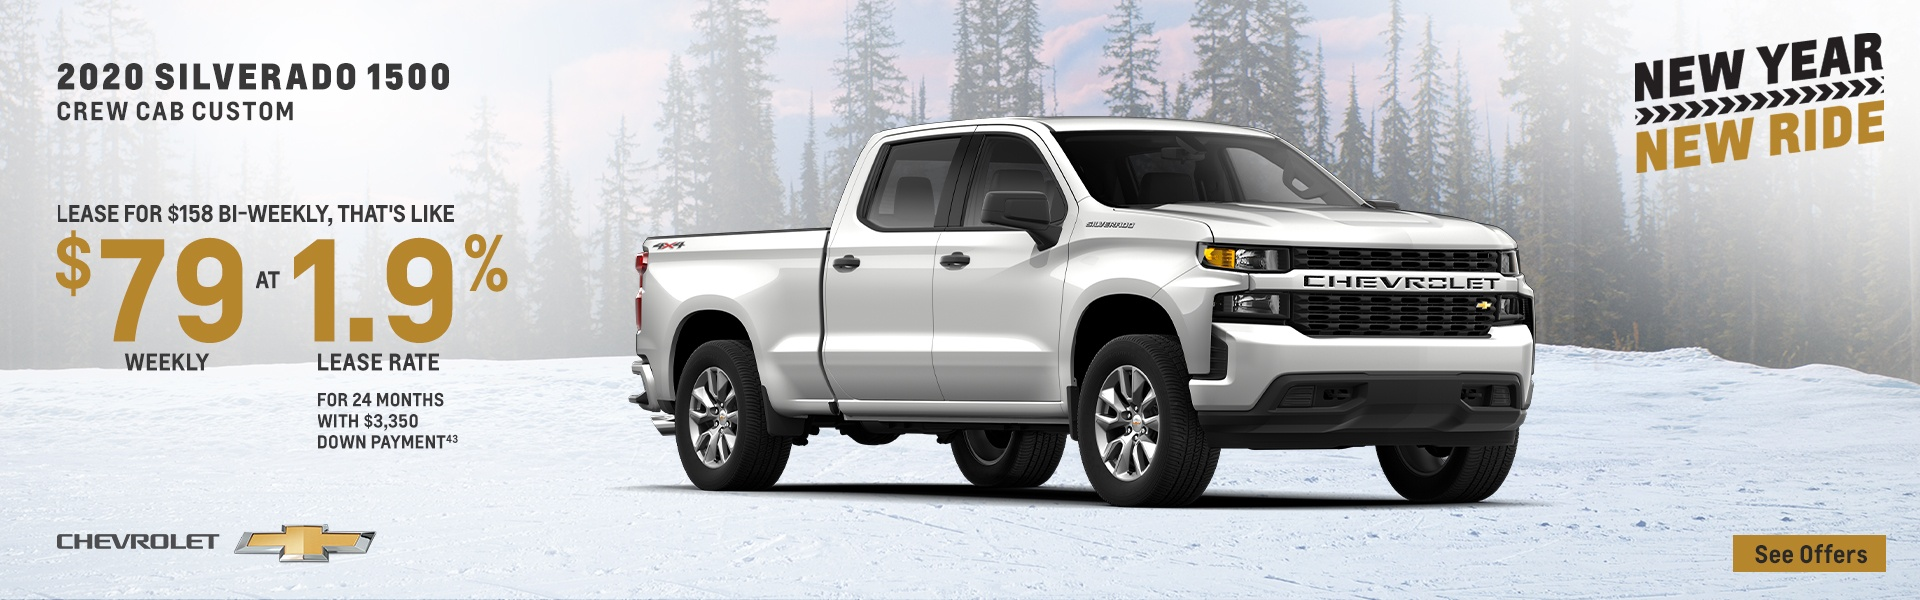 2020_CNT_Chevy_Multi_JAN_EN_T3_1920x600_v2_Silverado